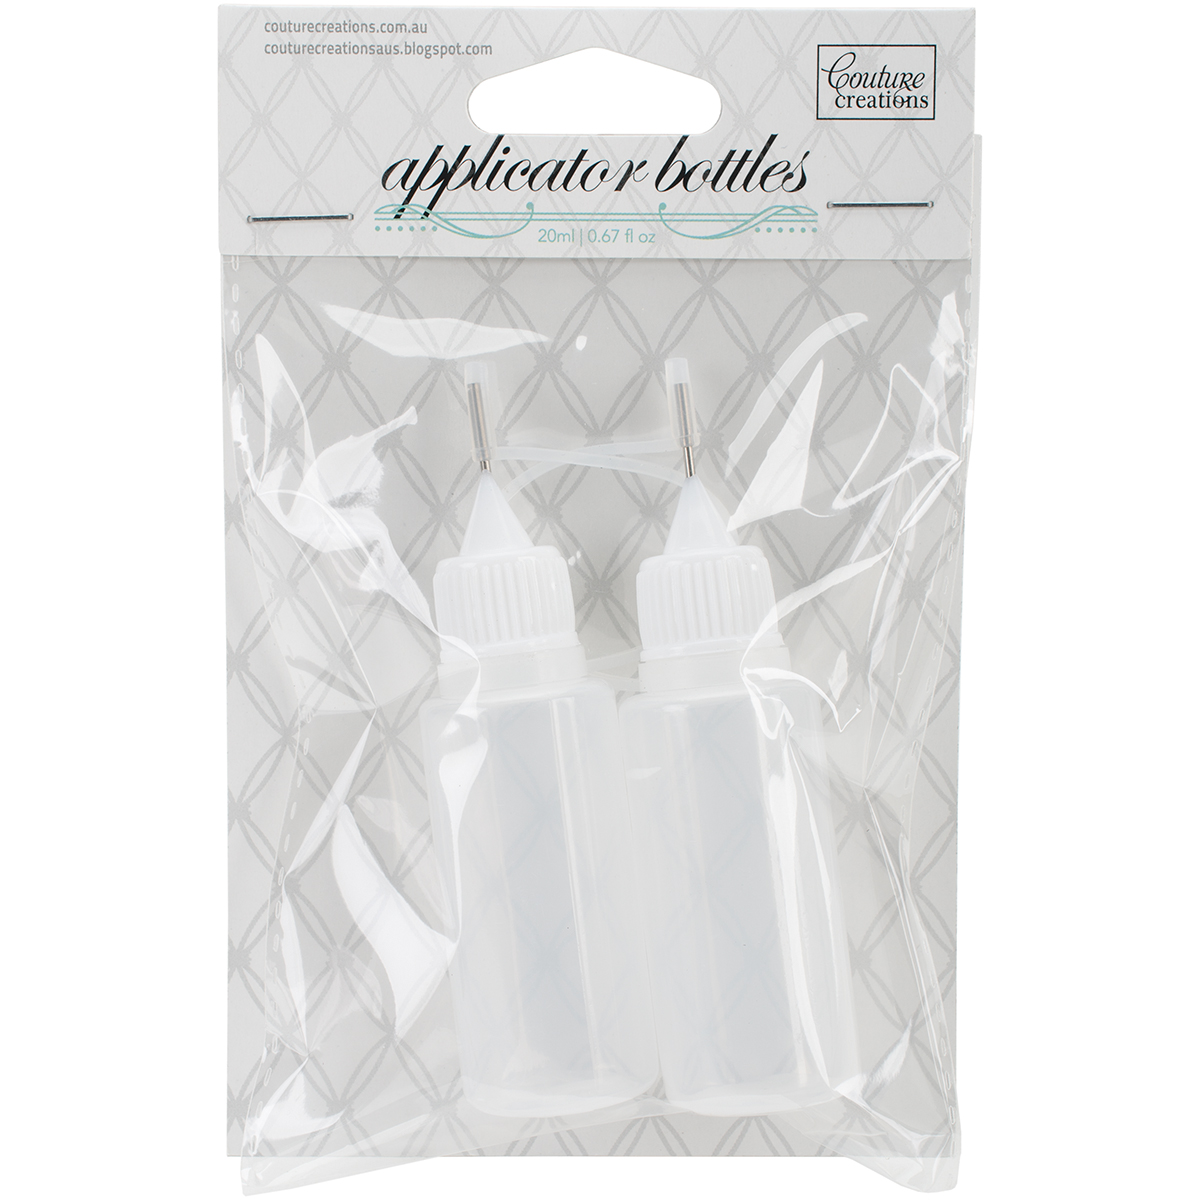 Couture Creations Ultra Fine Tip Applicator Bottle .67oz-